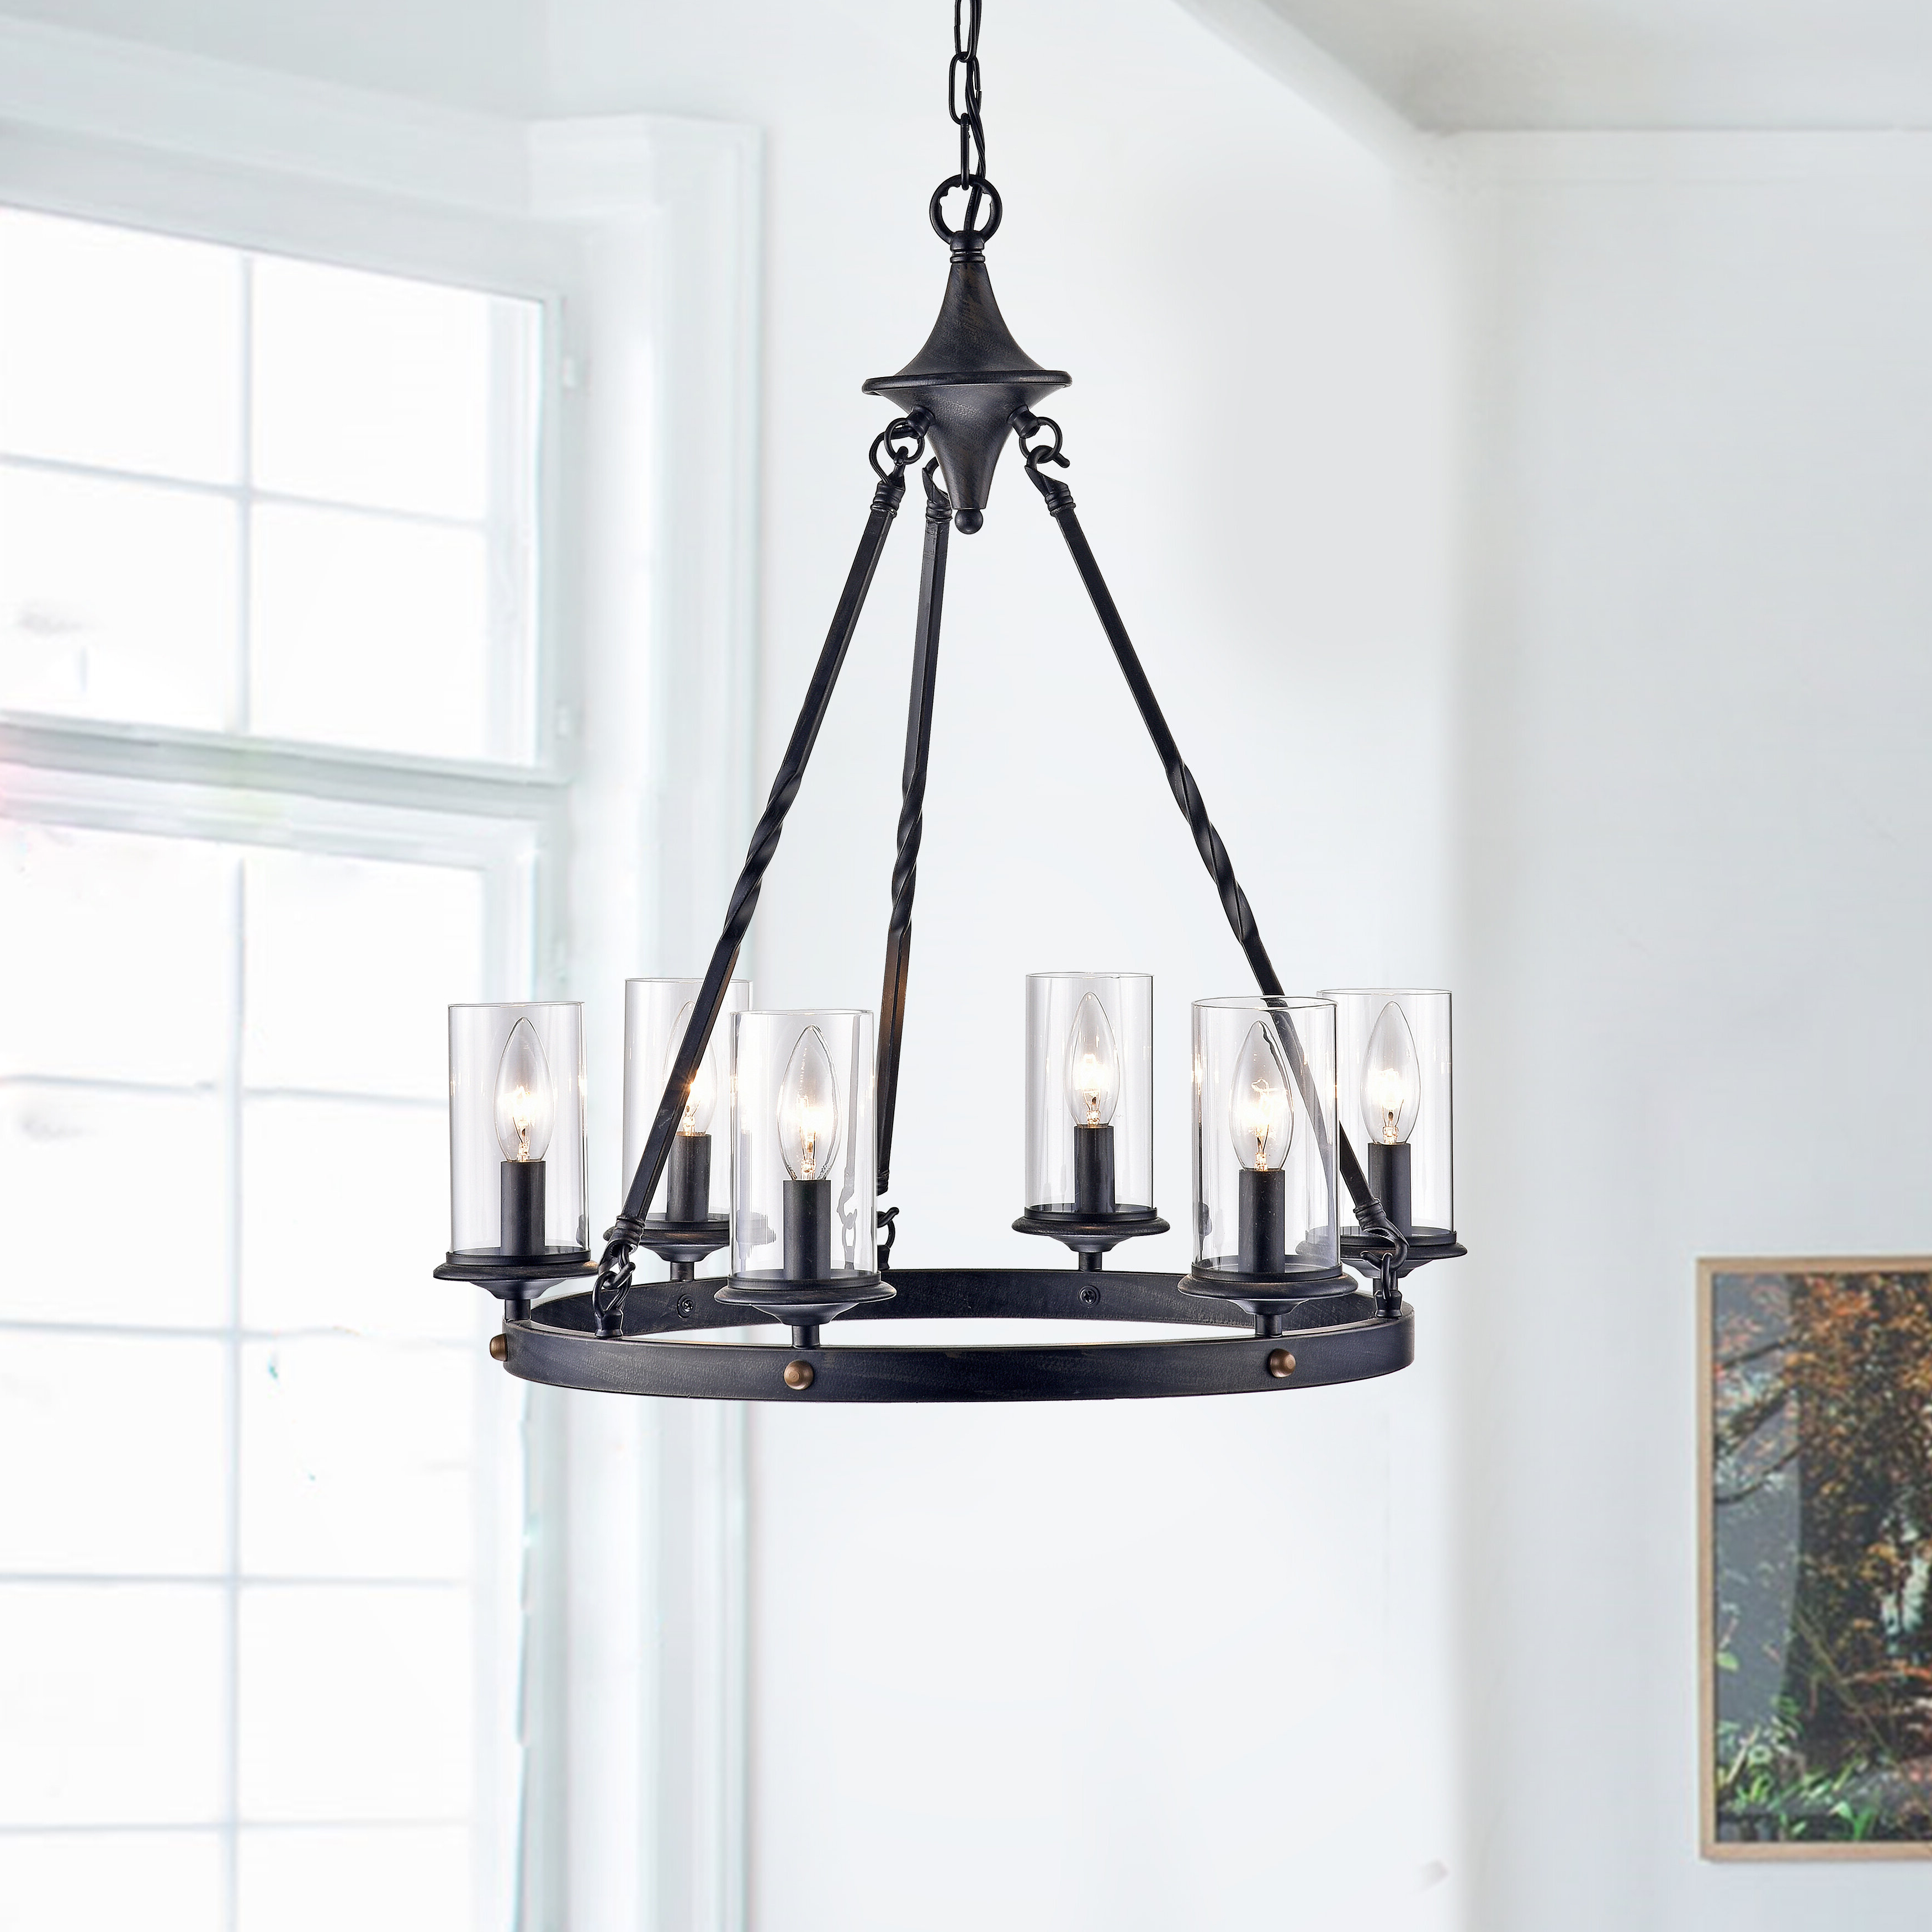 Trendy Sherri 6 Light Chandeliers Throughout Farmhouse & Rustic Black Chandeliers (View 14 of 25)